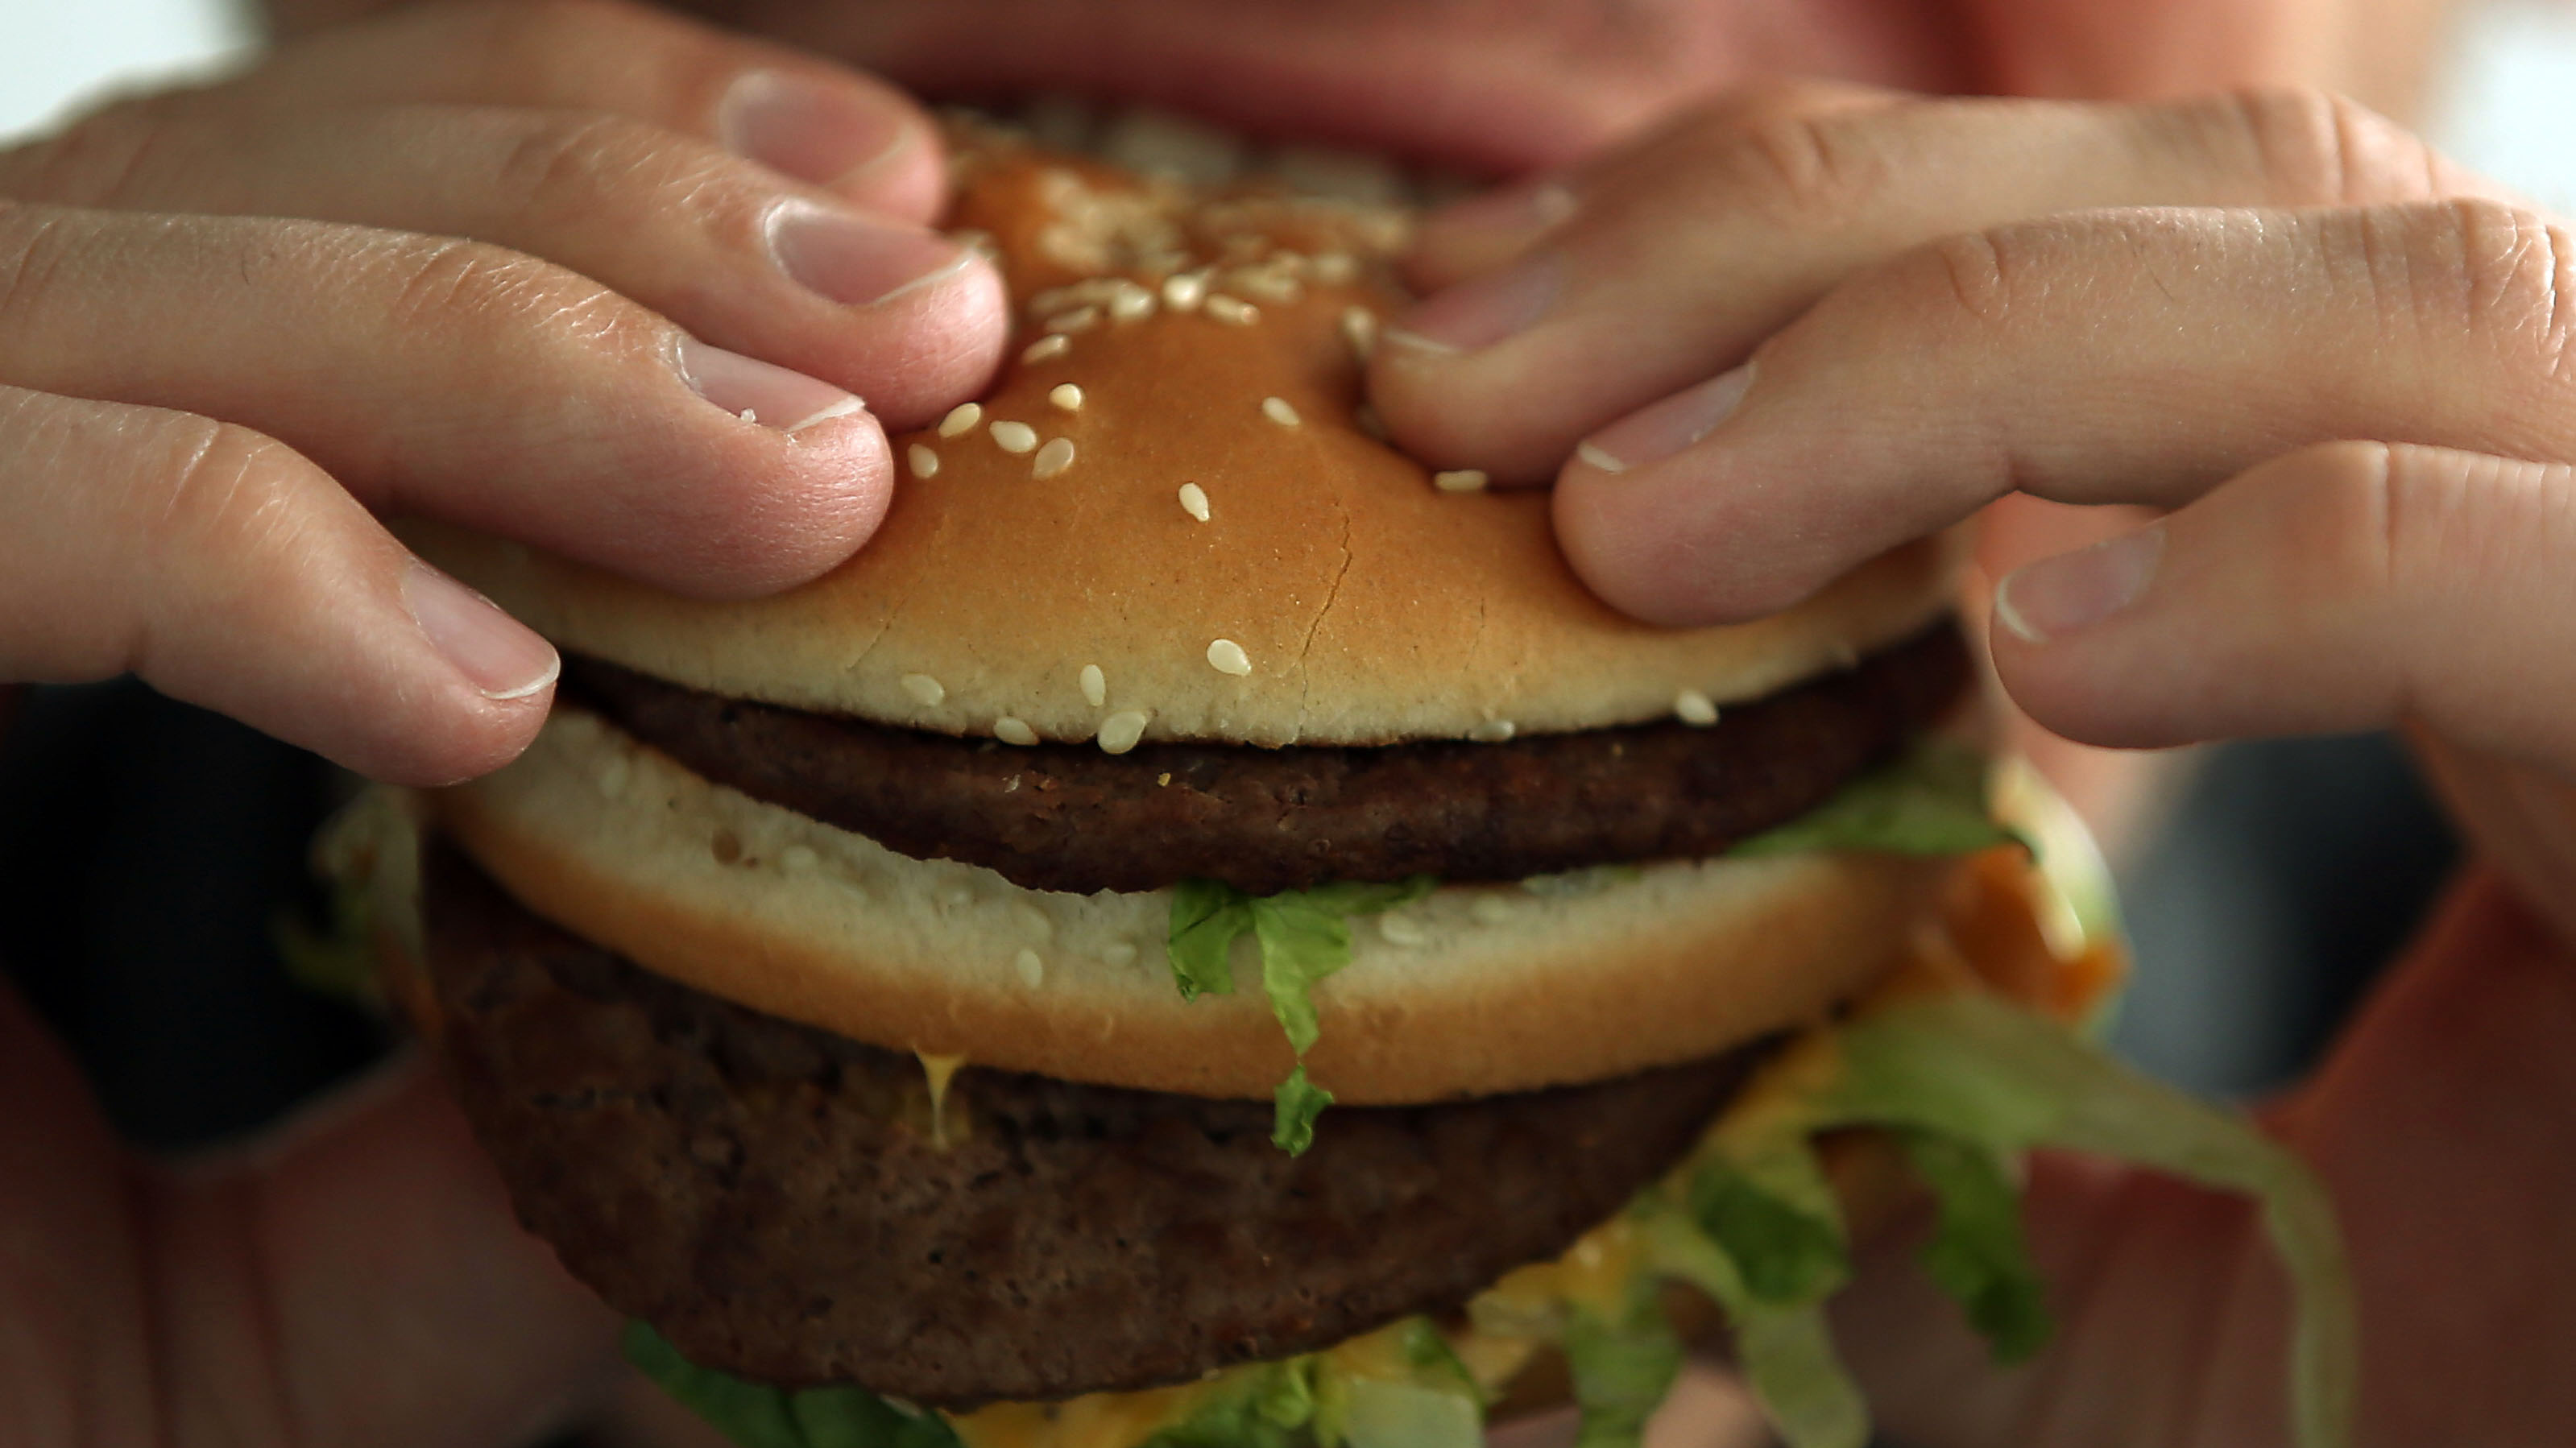 How to Get a Free Big Mac at McDonald's